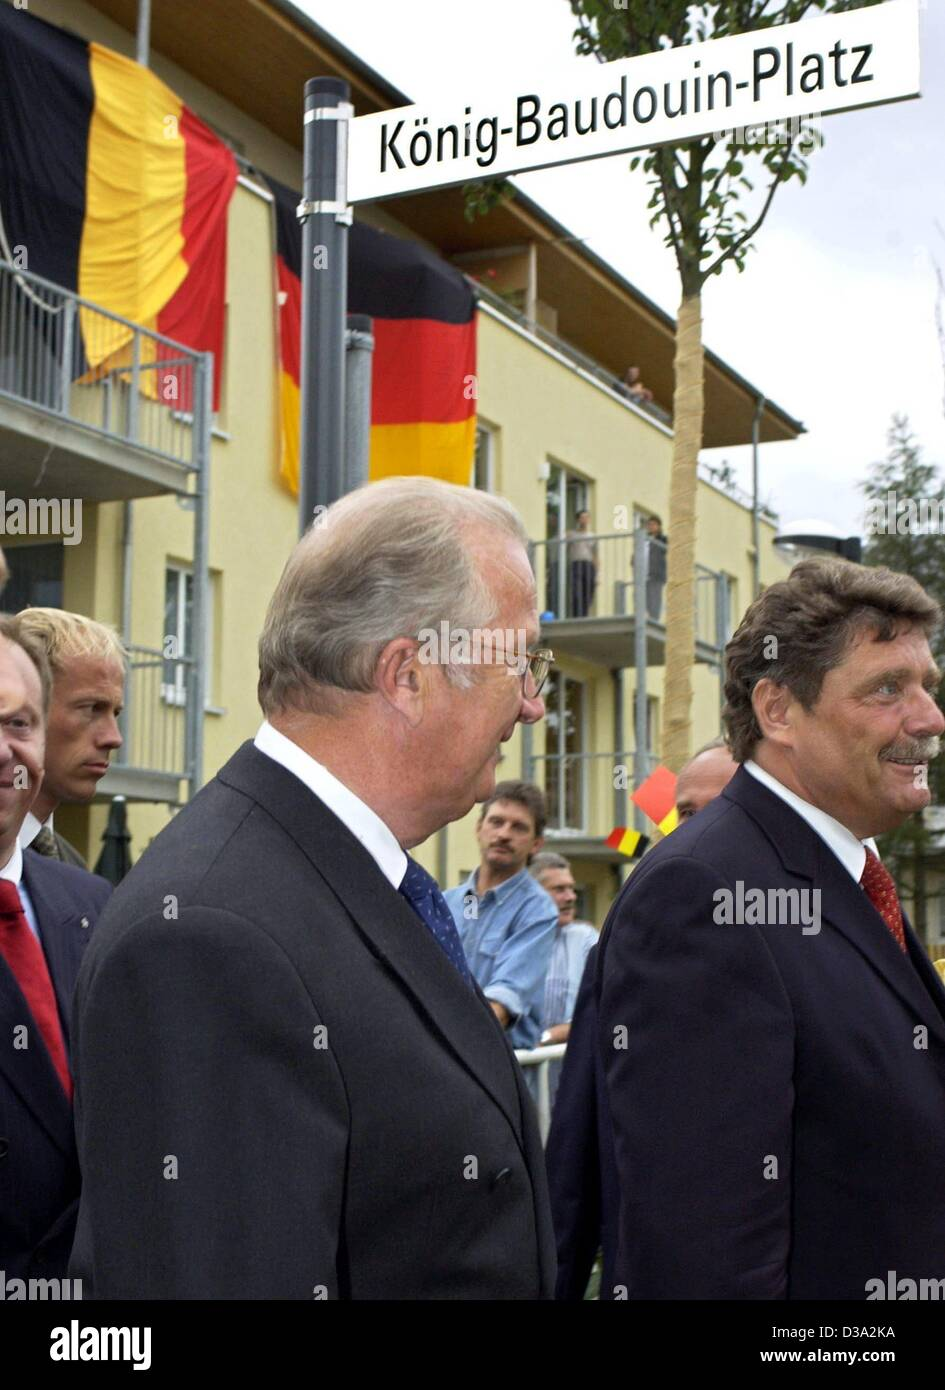 (dpa) - Belgian King Albert II, pictured at the inauguration of the Koenig-Baudouin-Platz (King Baudouin Square) - Stock Image